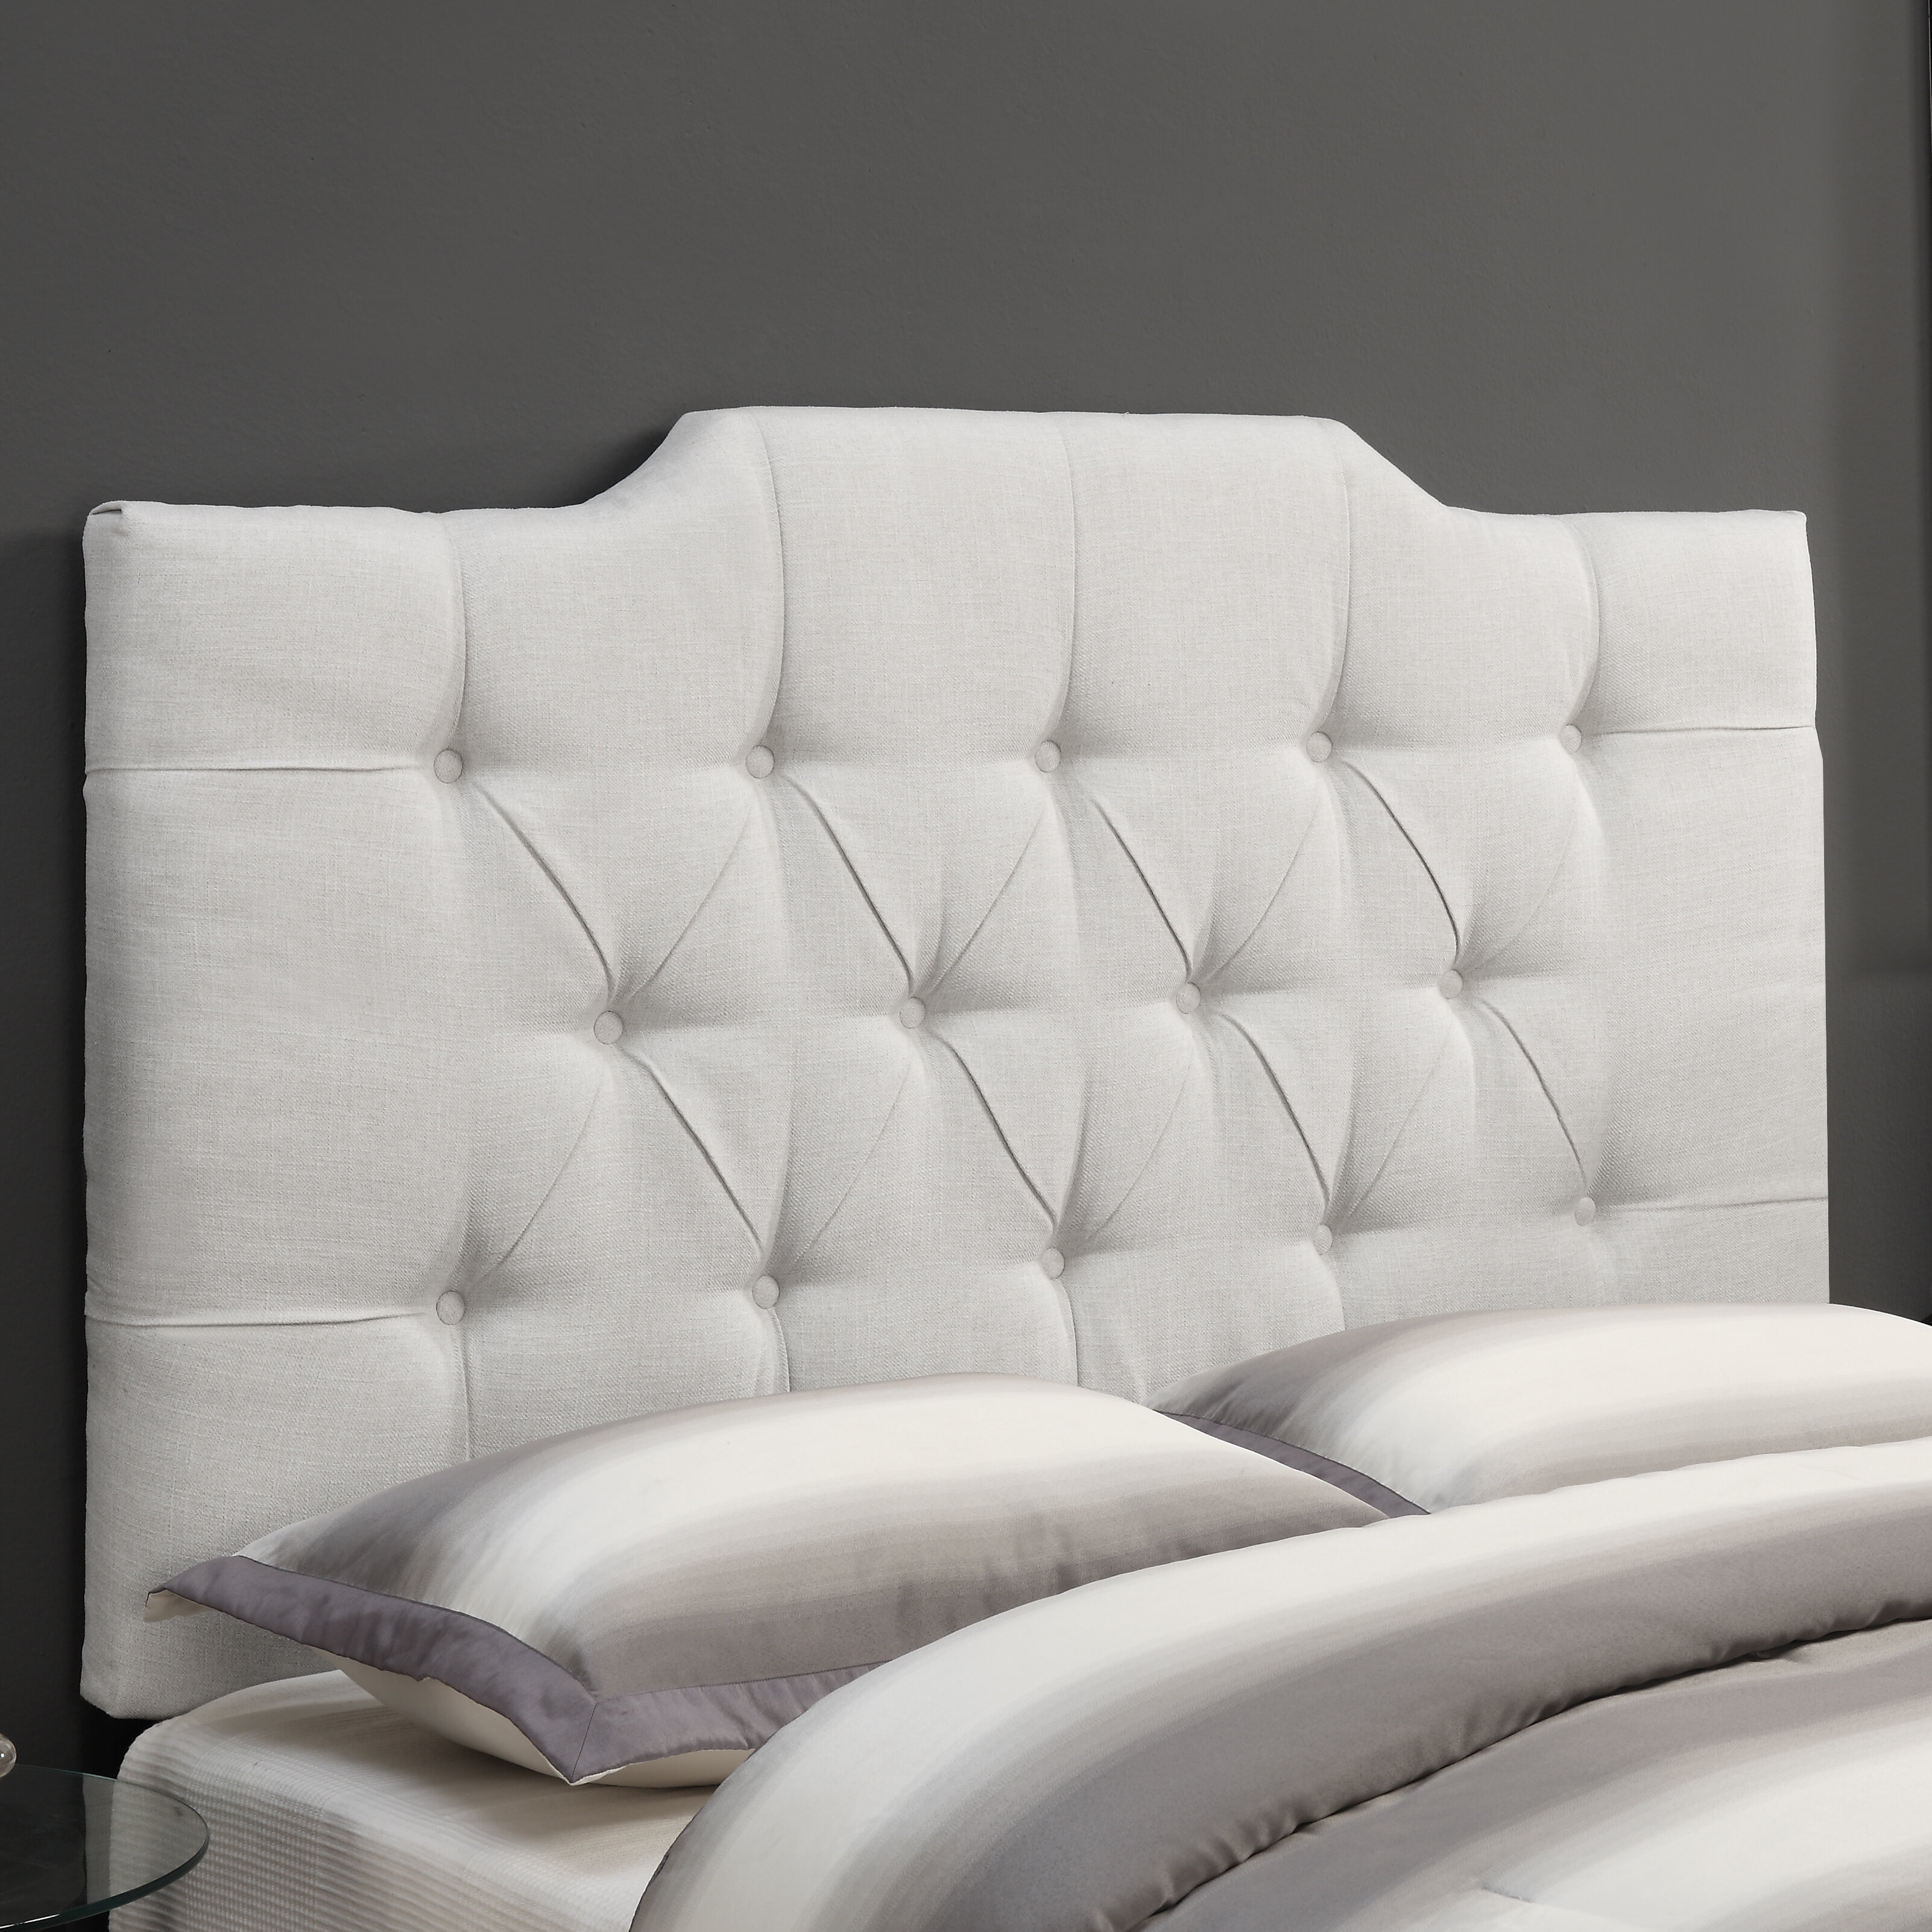 to style main headboards swainsboro popular imgid cover panel best upholstered a headboard reviews how for pics joss u and